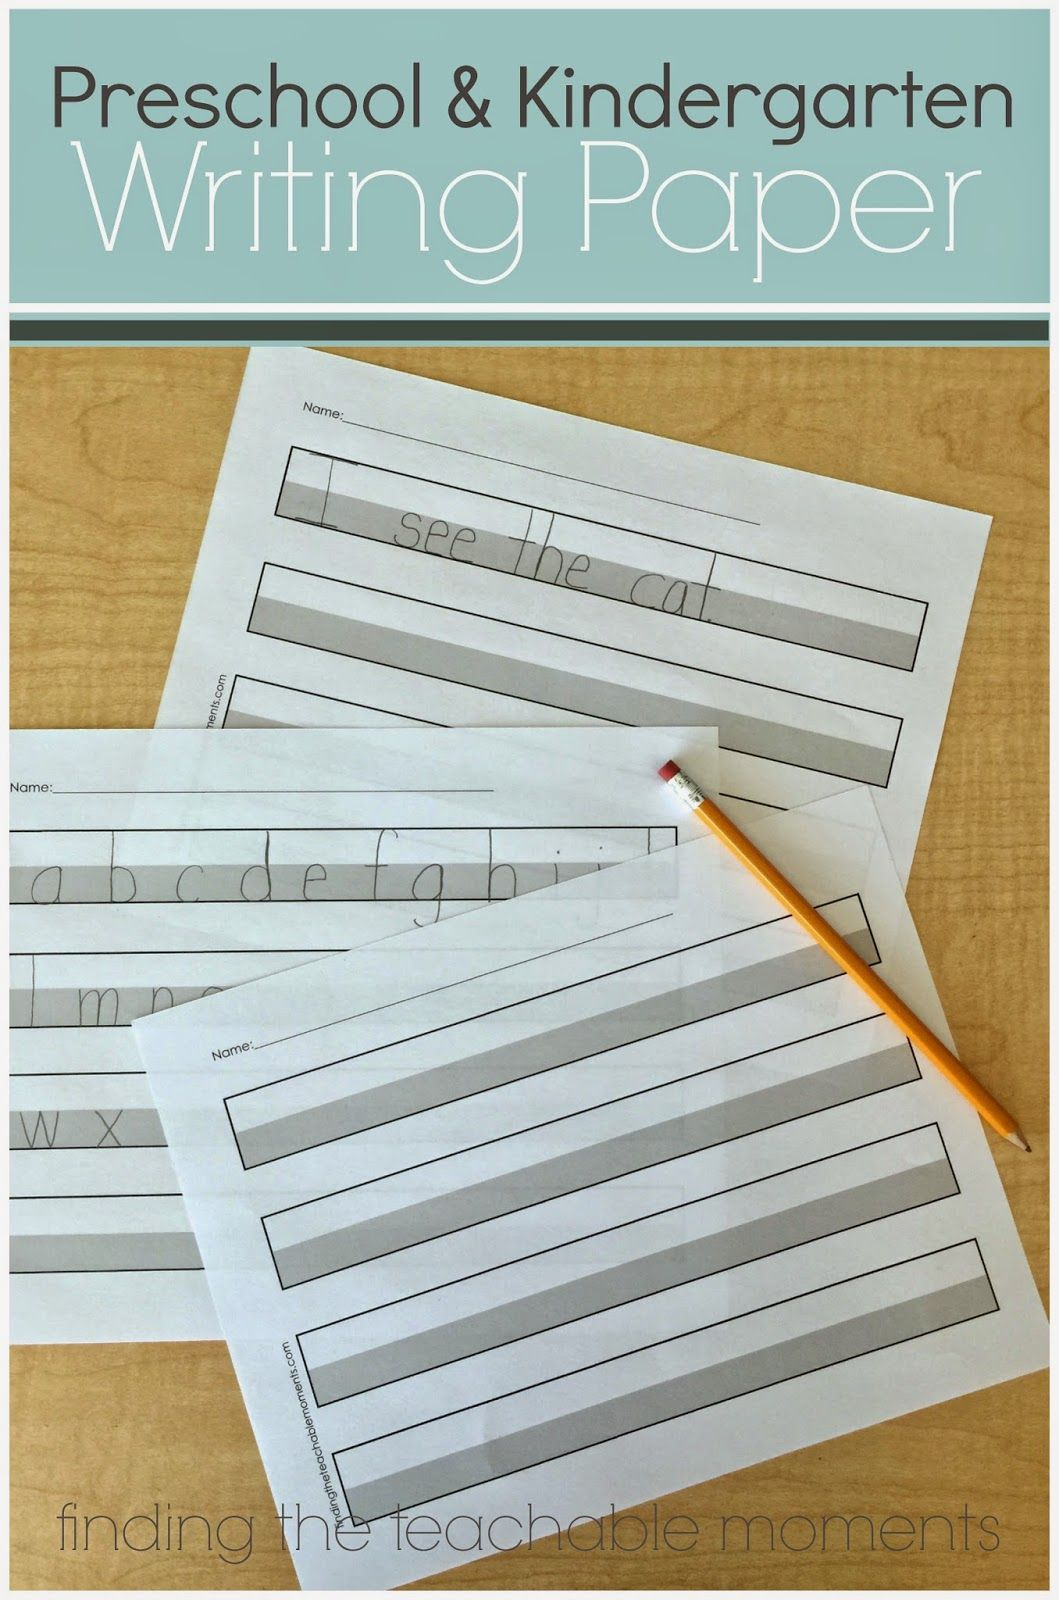 Preschool and Kindergarten Writing Paper | New Teachers | Pinterest ...